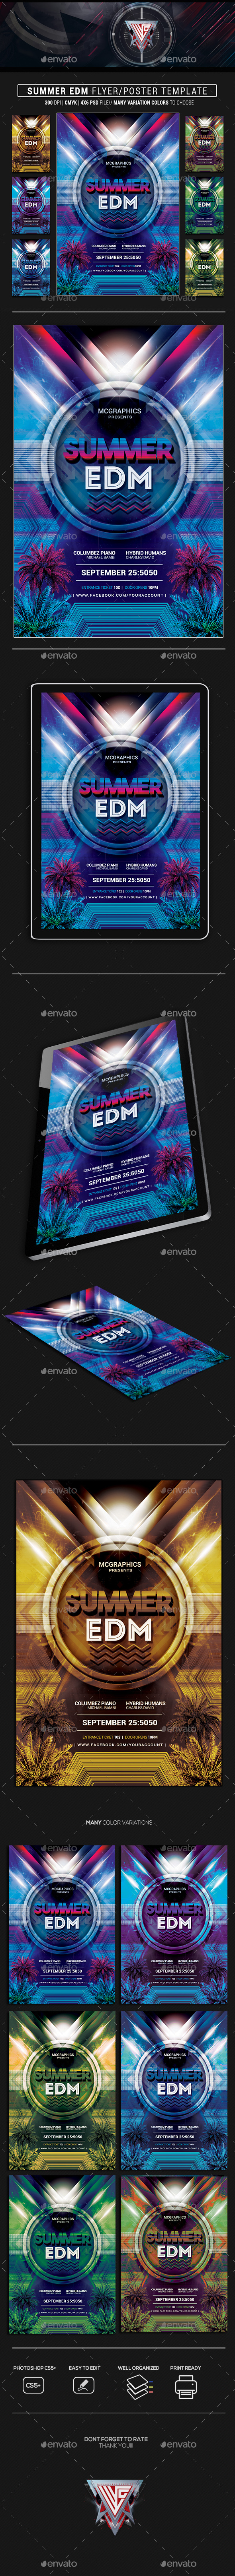 Summer EDM Photoshop Flyer/Poster Template - Flyers Print Templates